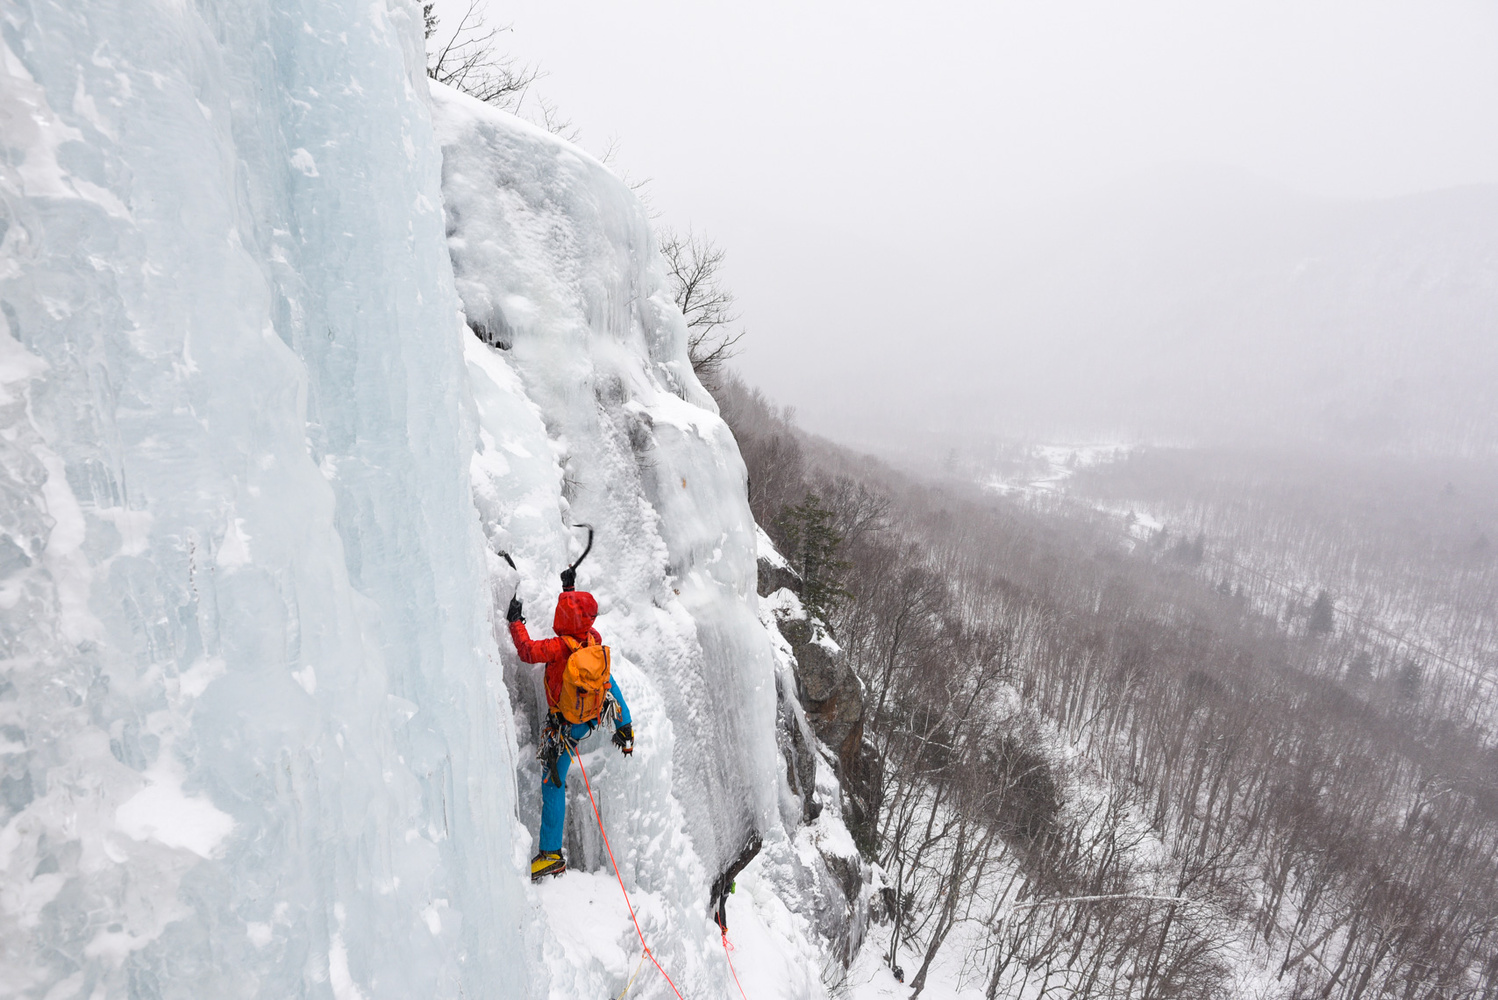 Ice Climber on Standard Route in Crawford Notch, New Hampshire by Joe Klementovich